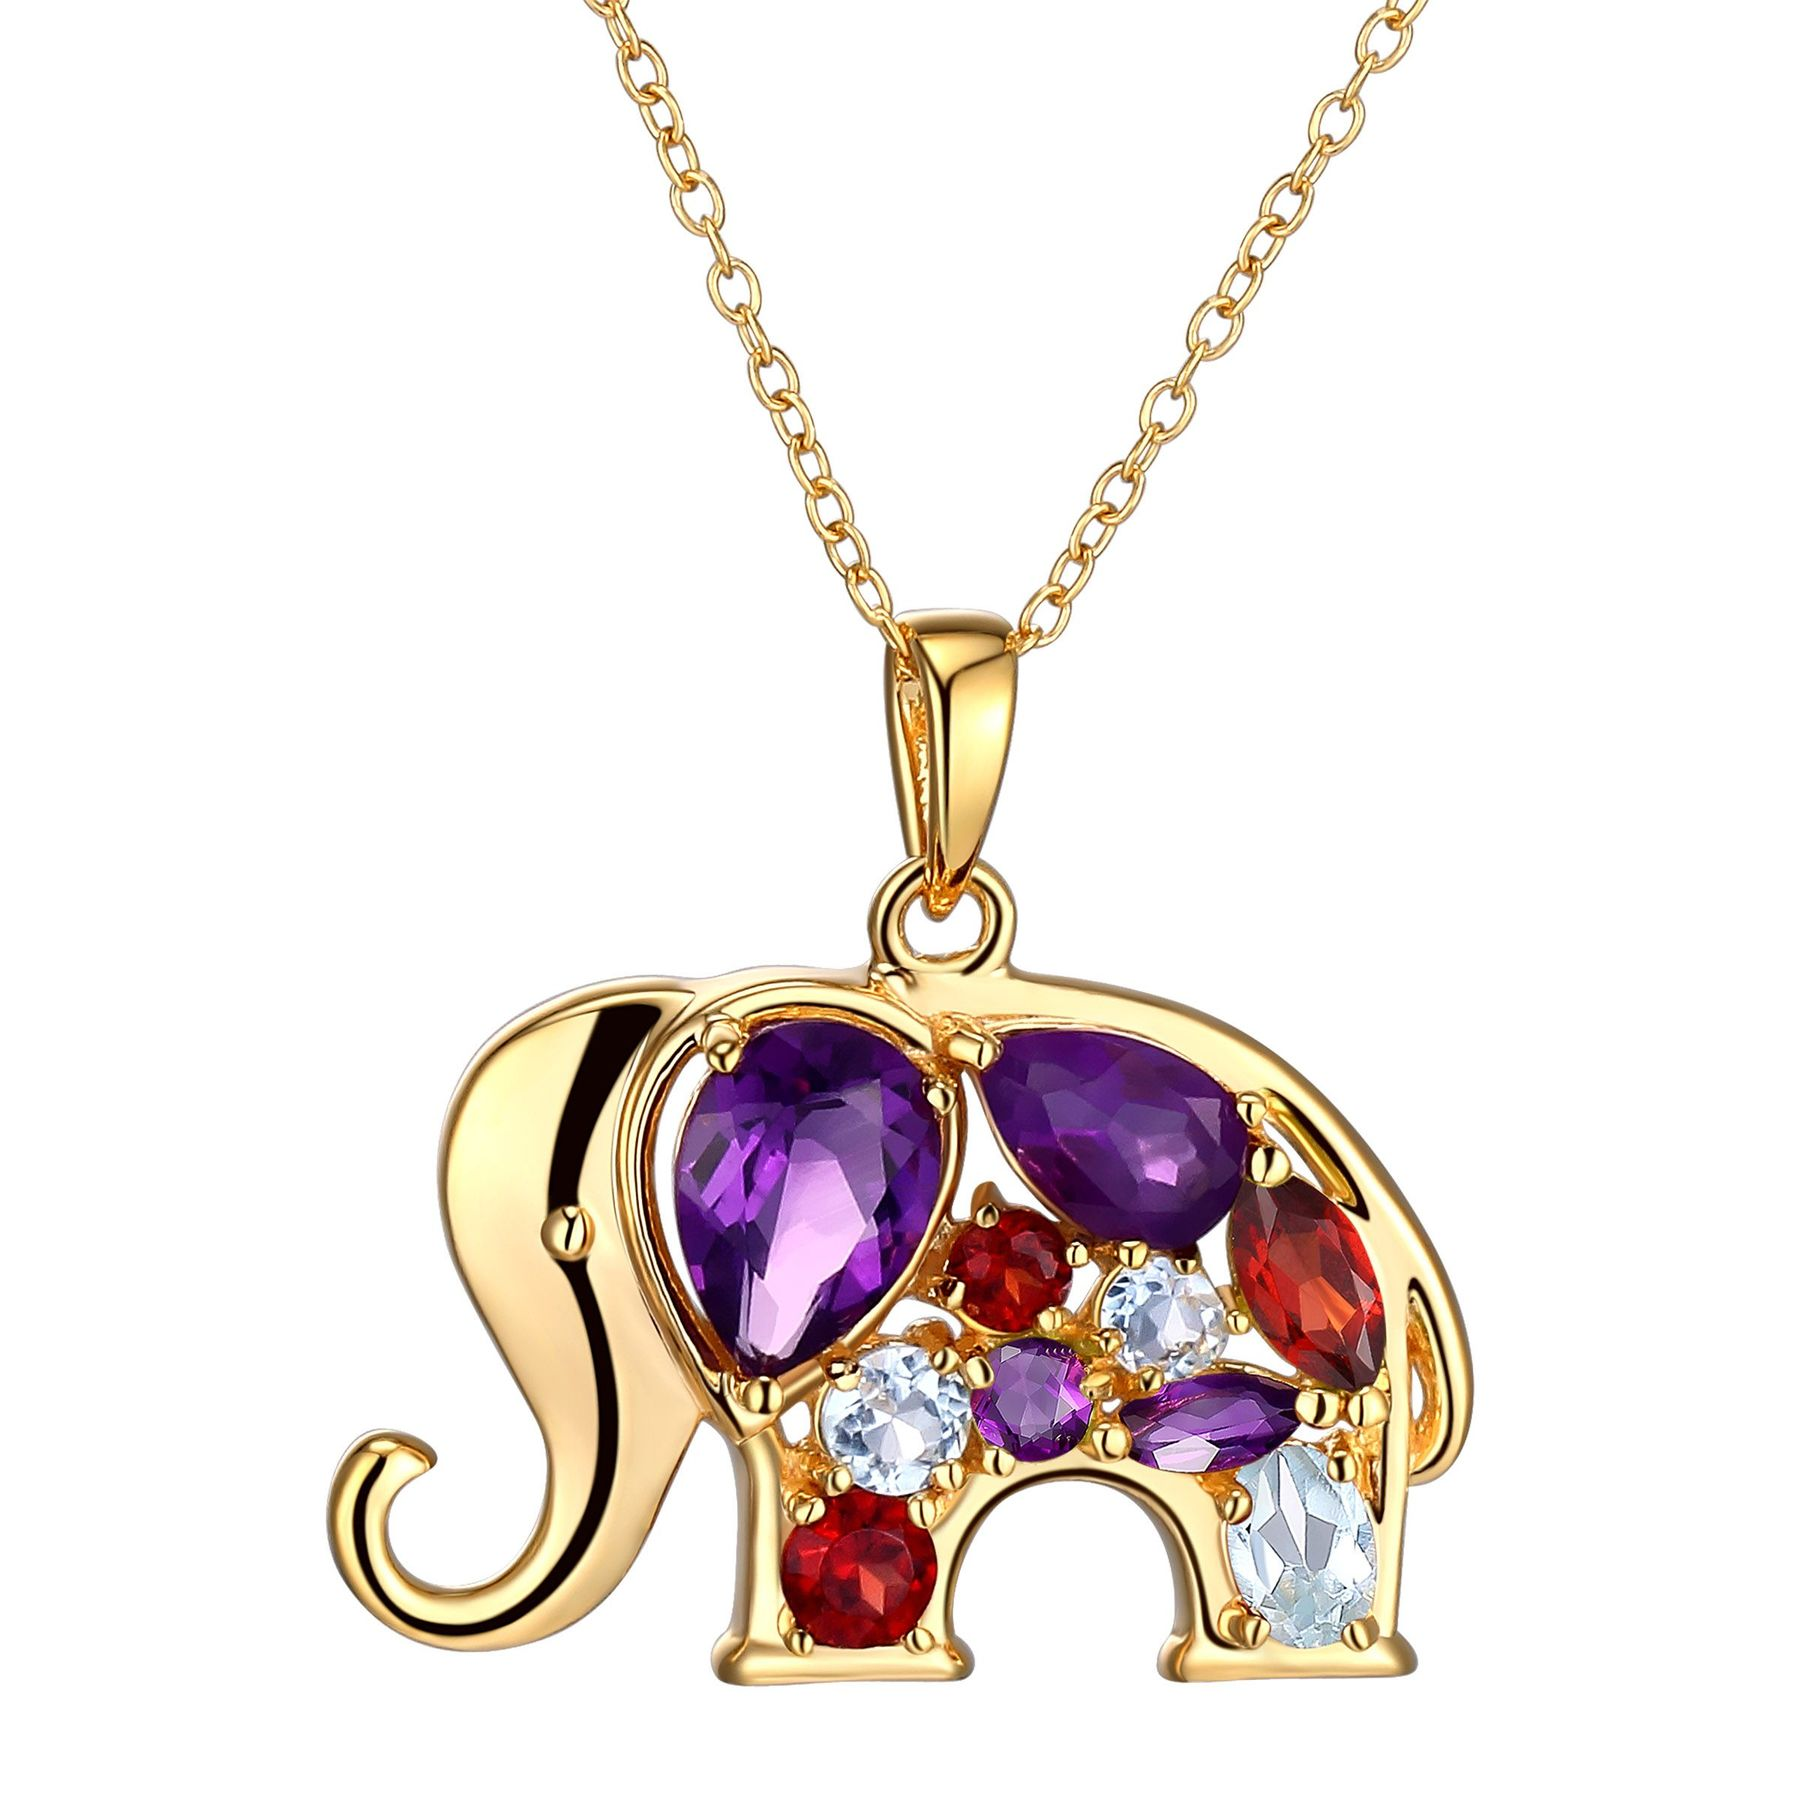 family w pendant silver t sterling diamond gold in macy ct main rose fpx elephant shop necklace product image s